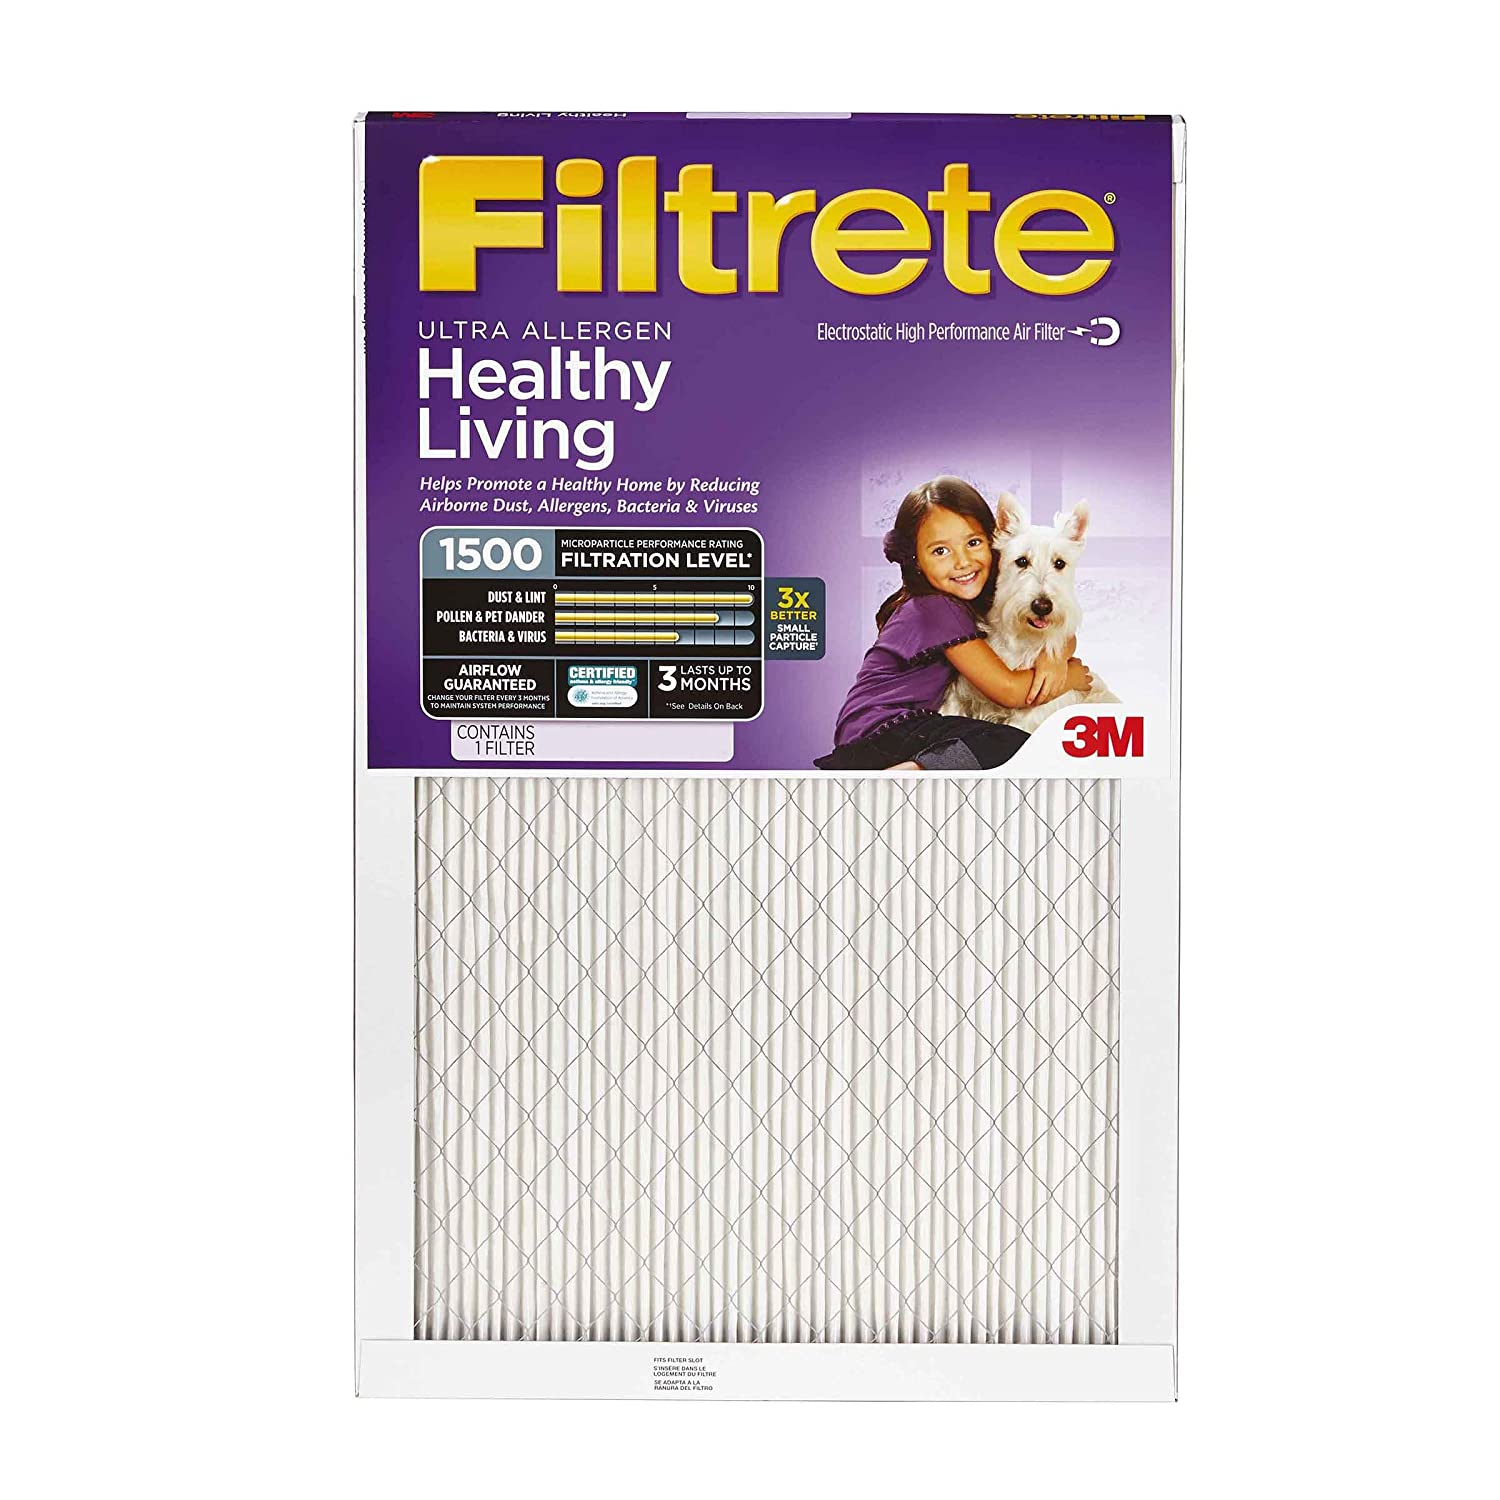 Filtrete 20x20x1, AC Furnace Air Filter, MPR 1500, Healthy Living Ultra Allergen, 4-Pack